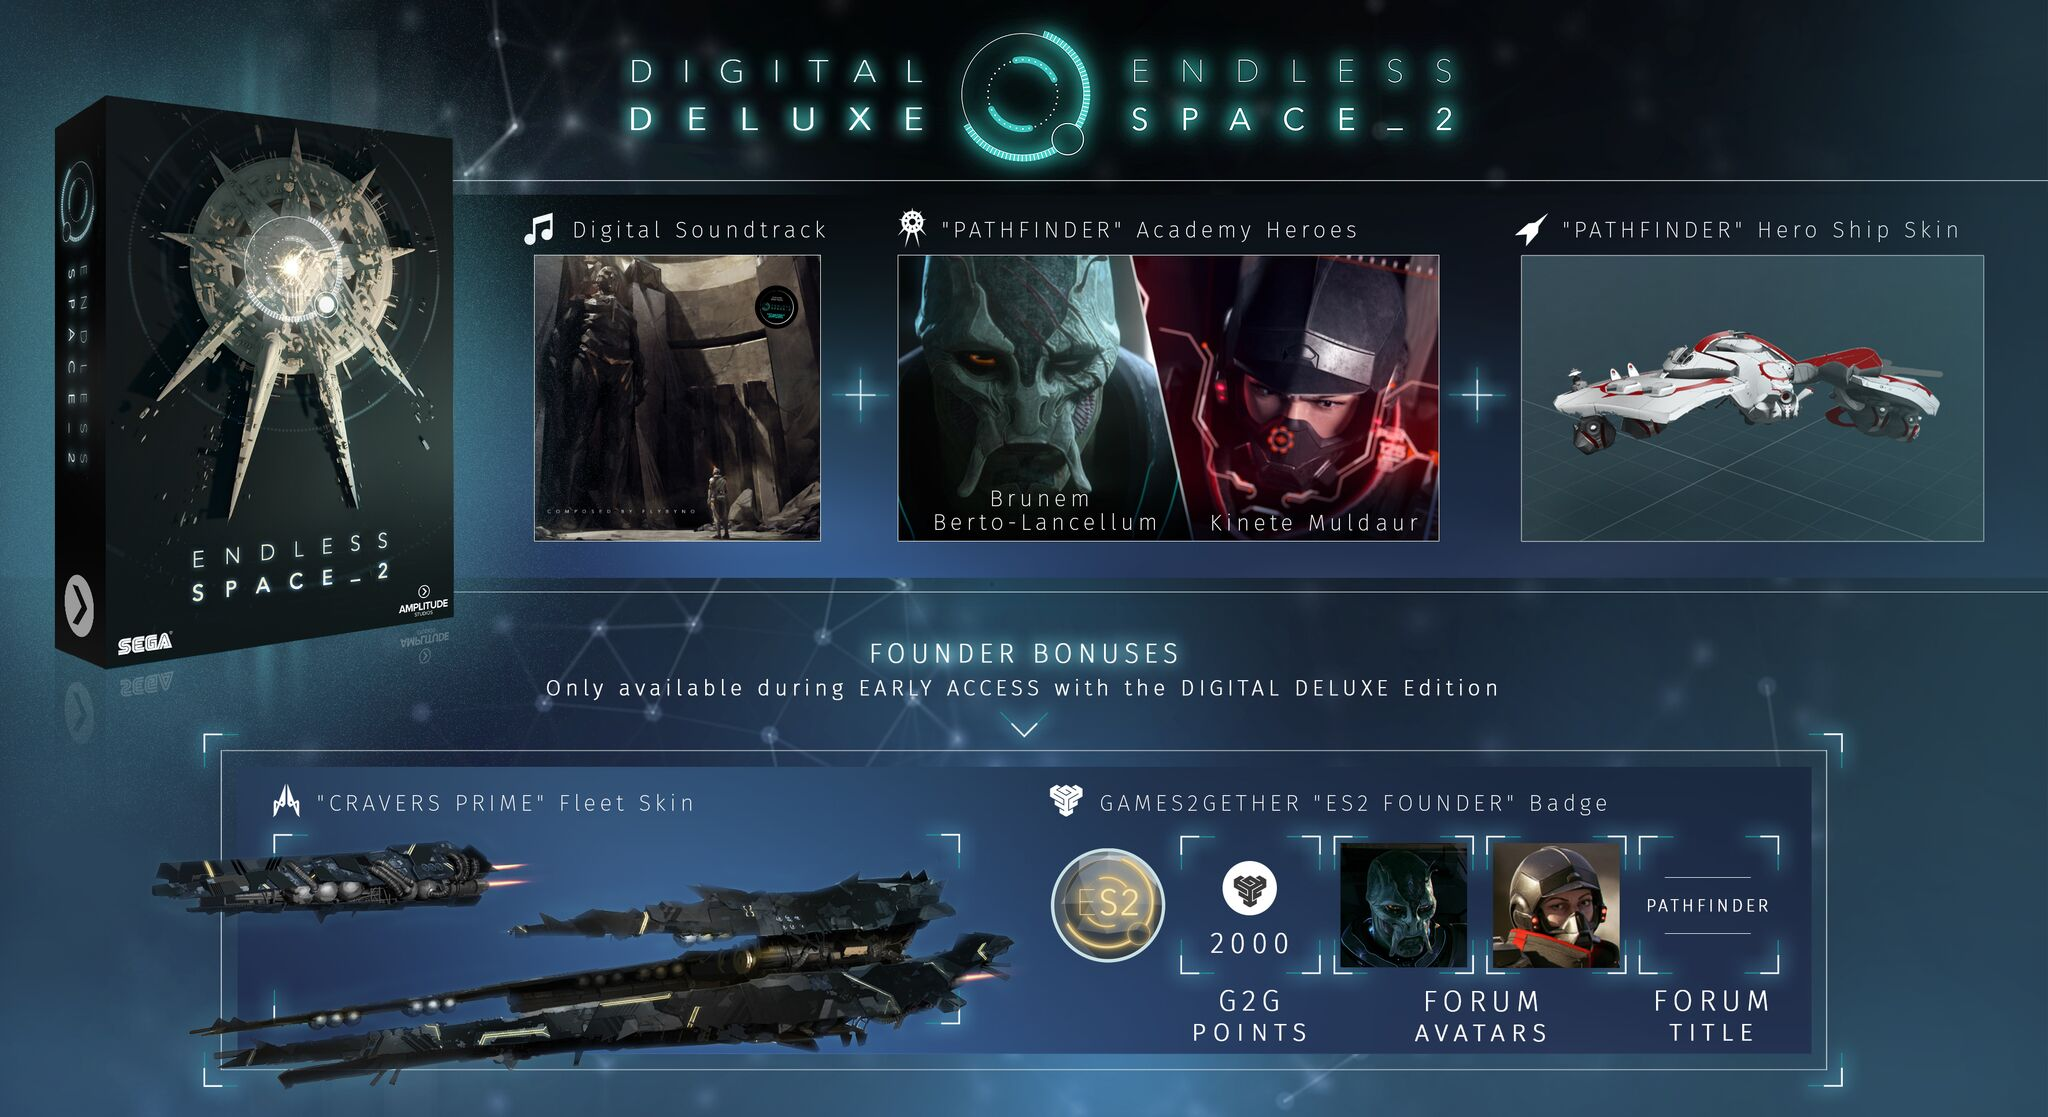 Endless Space 2 Digital Deluxe